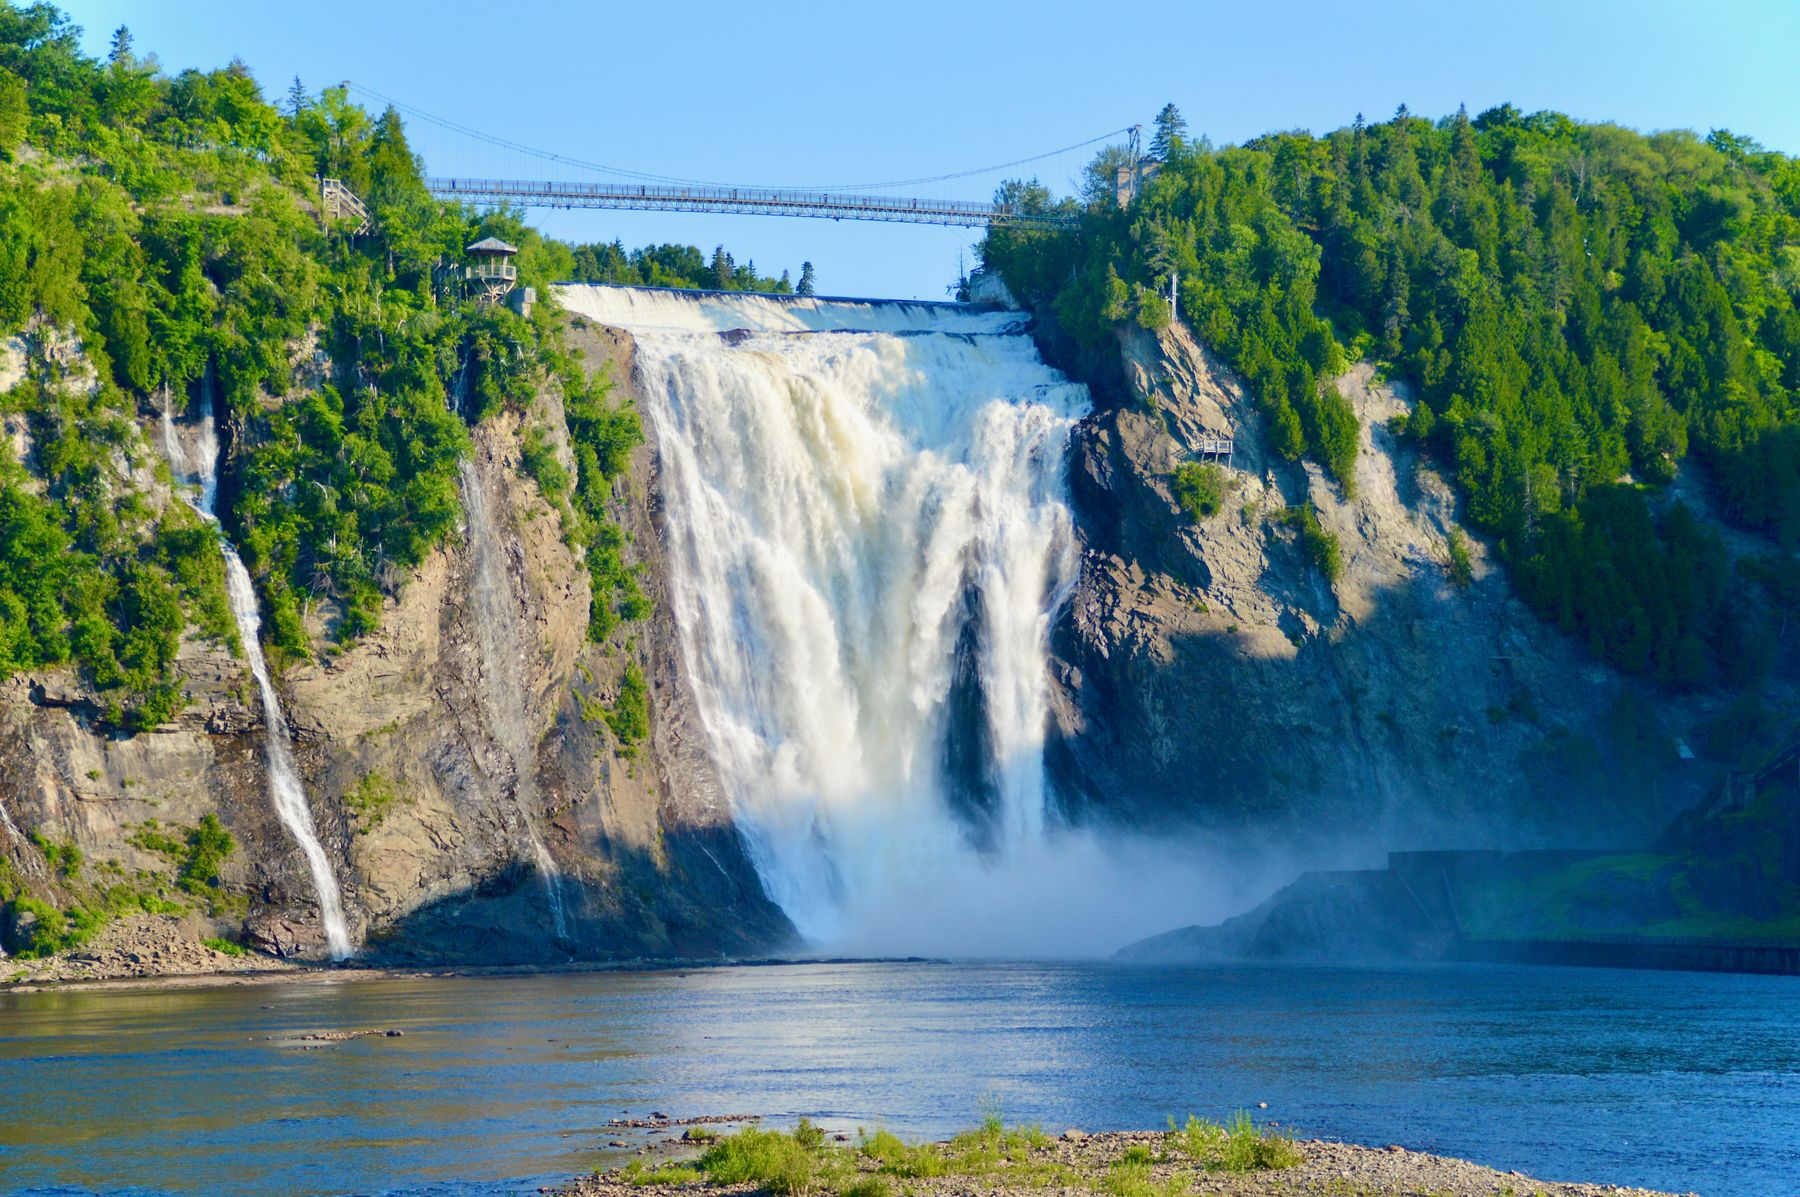 view across the river on Montmorency Falls, a popular attraction near Quebec City